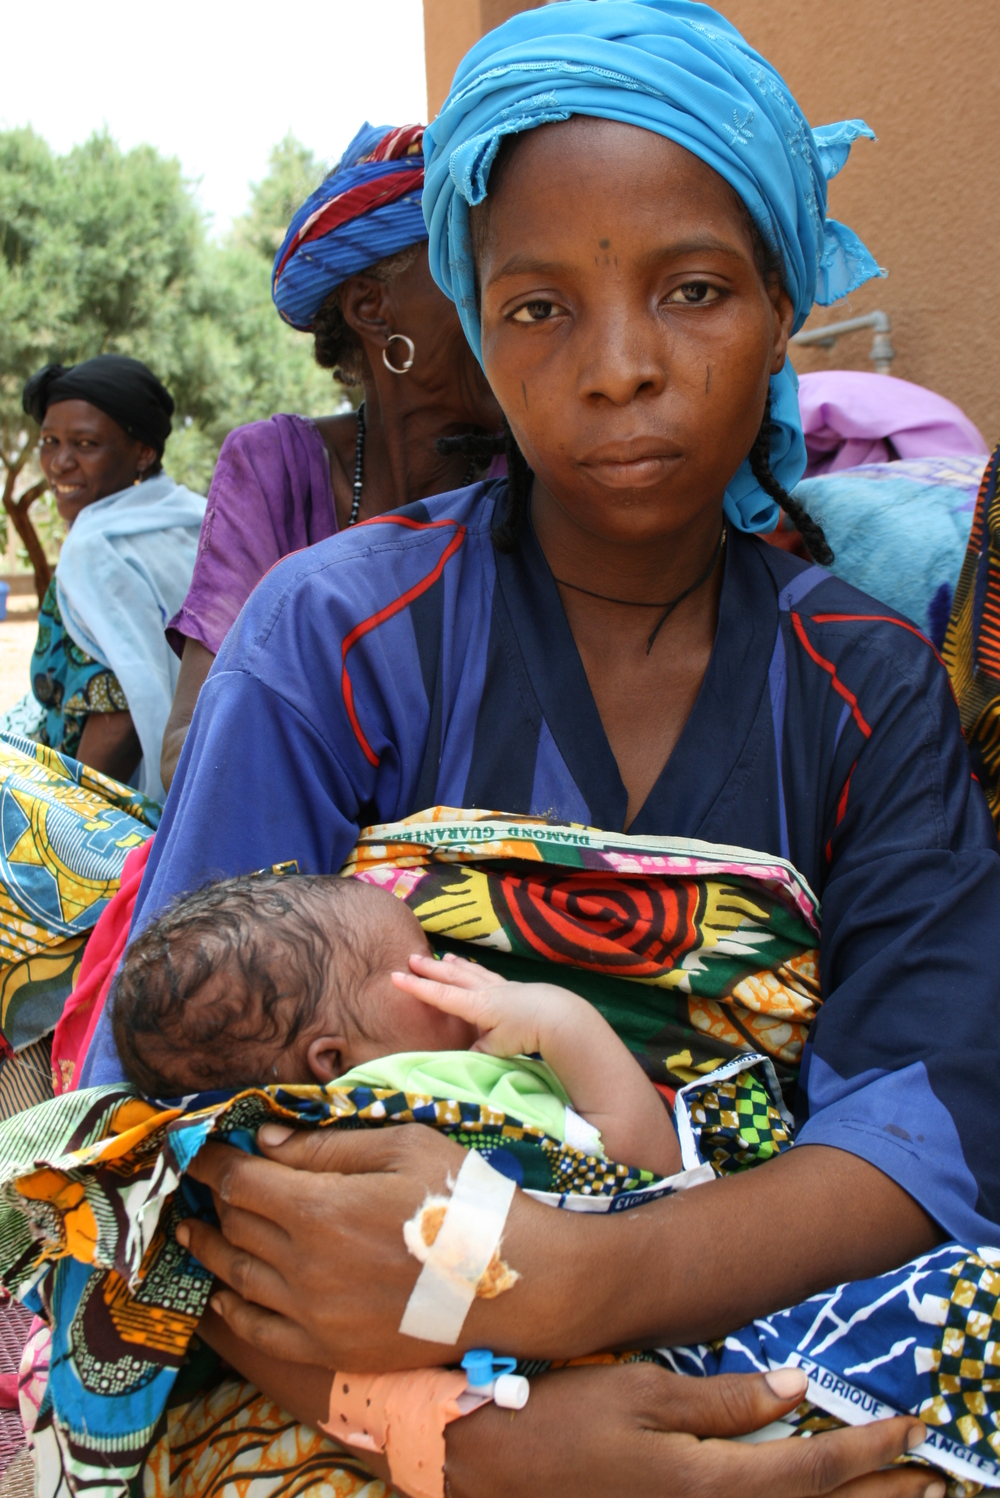 Ouma Ibrahim, 24 years old, with her newborn son in Agadez. (Photo taken 22 August 2008)